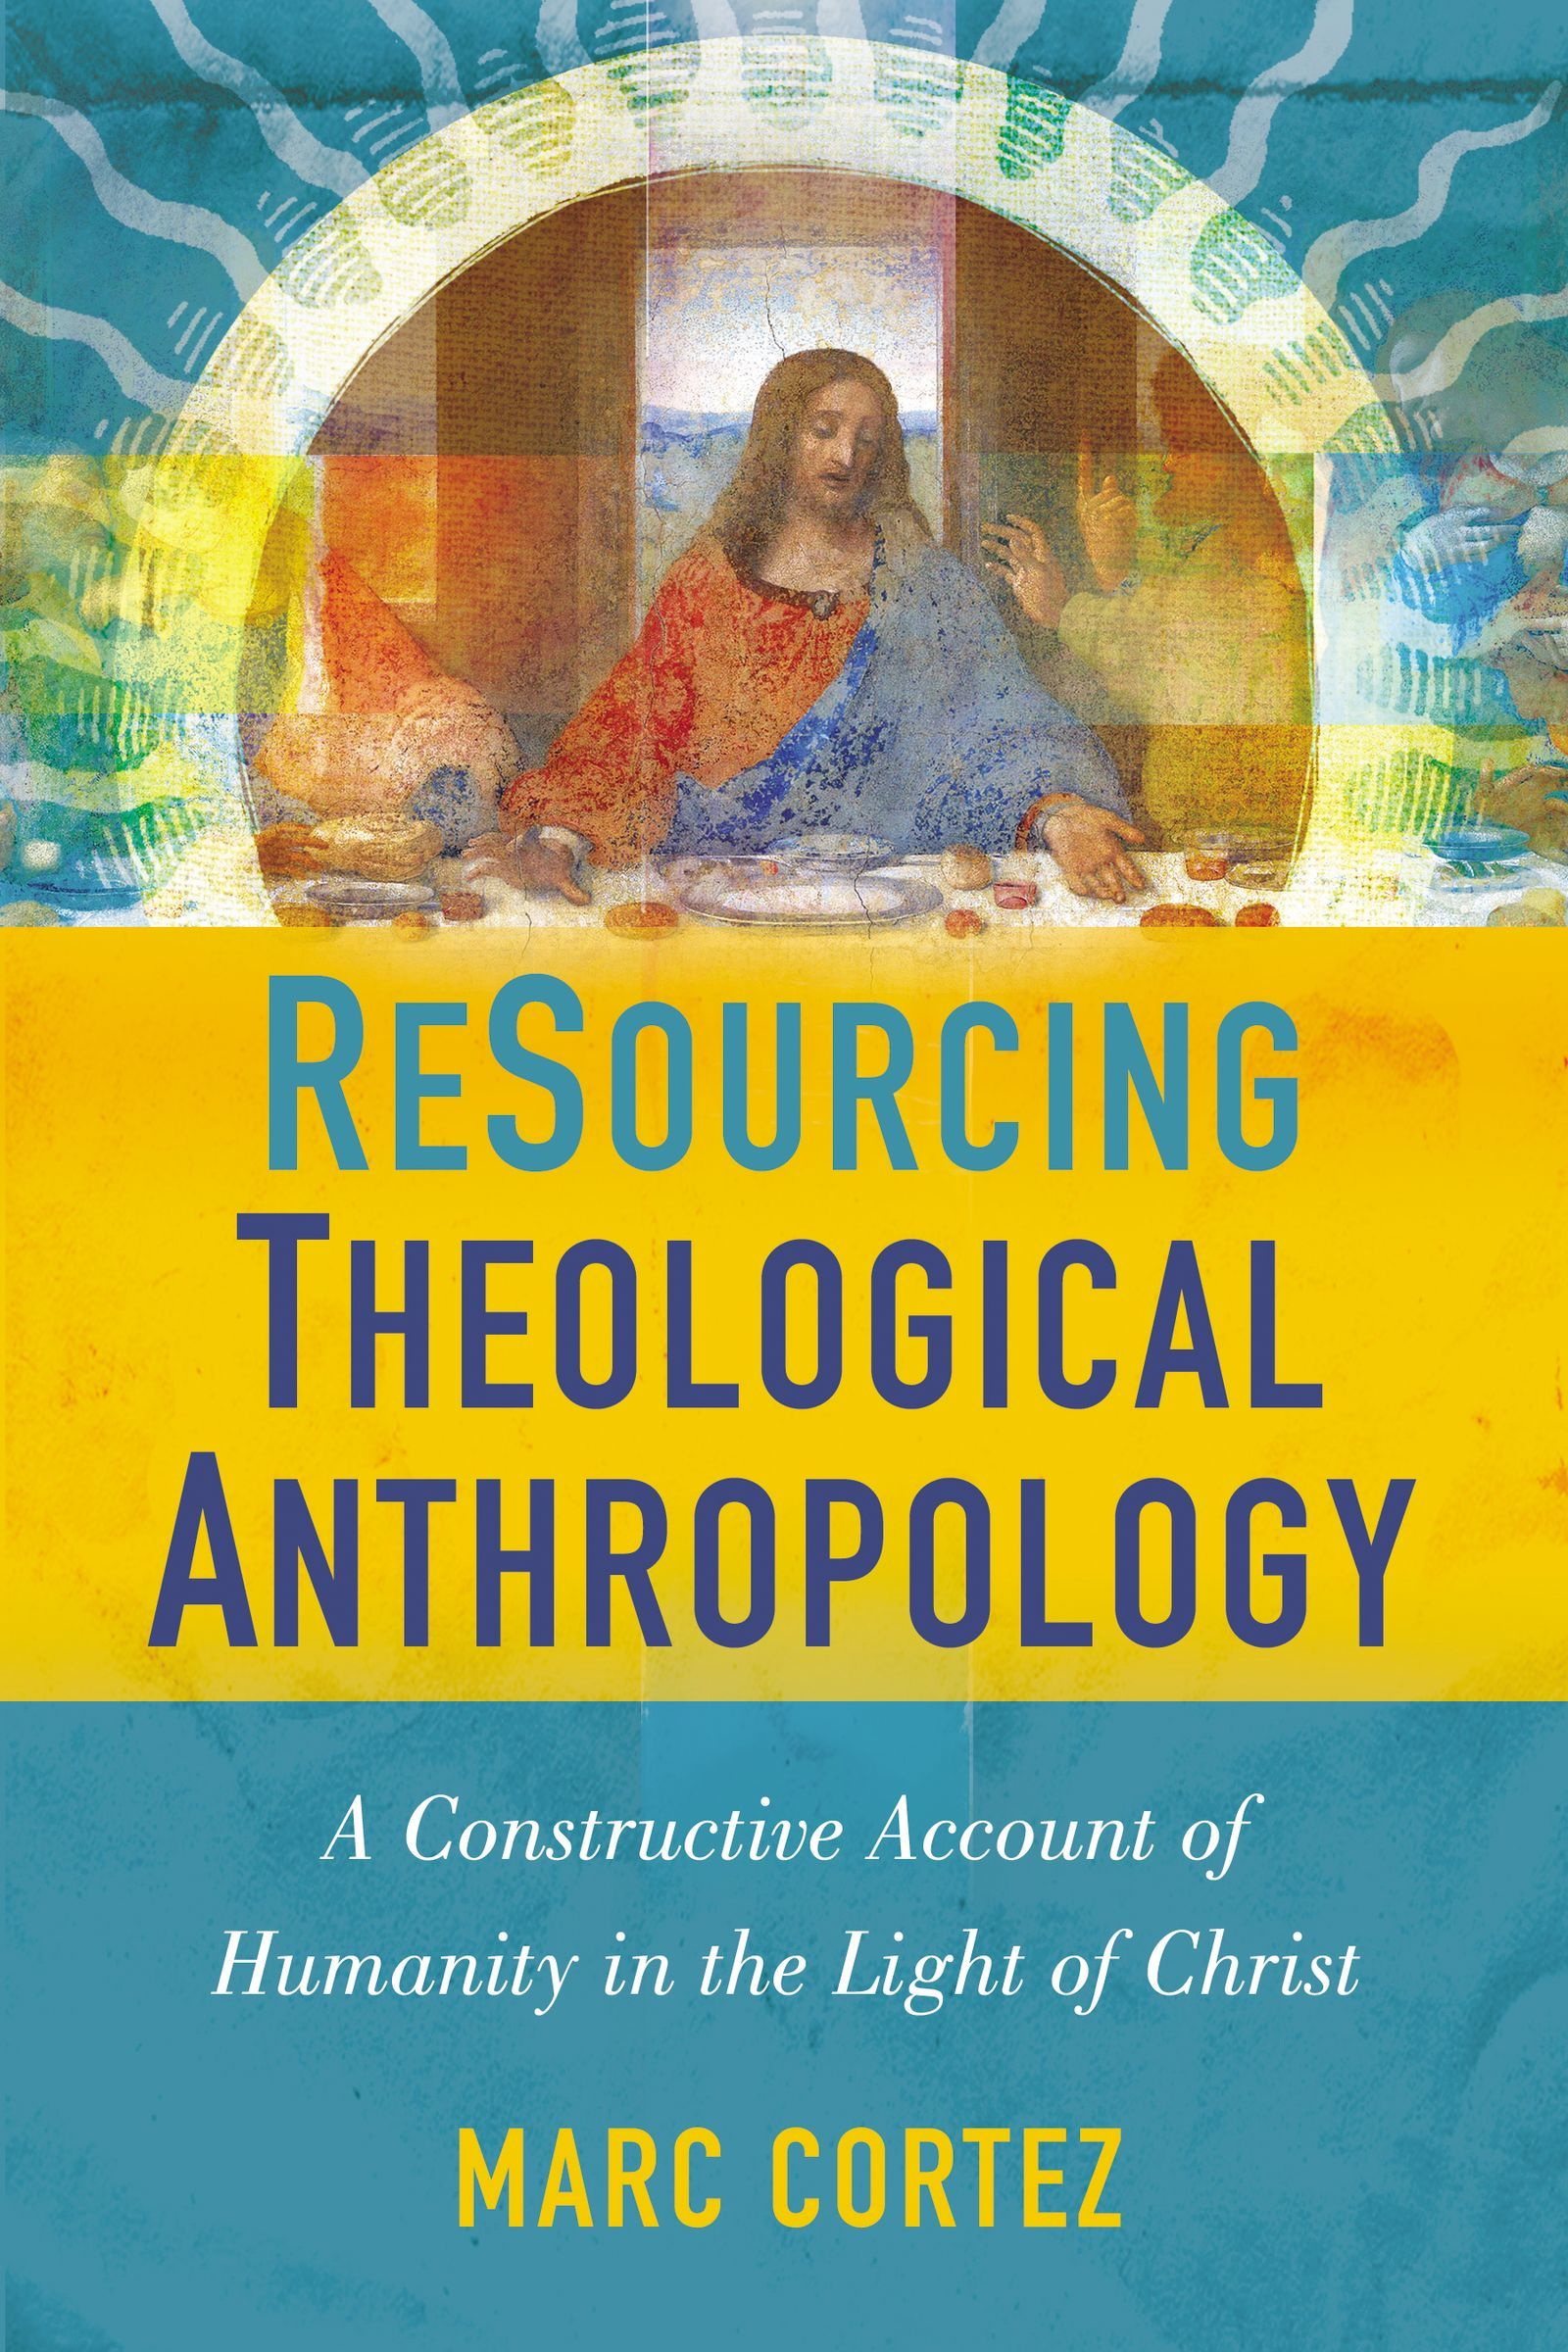 ReSourcing Theological Anthropology: A Constructive Account of Humanity in the Light of Christ Marc Cortez